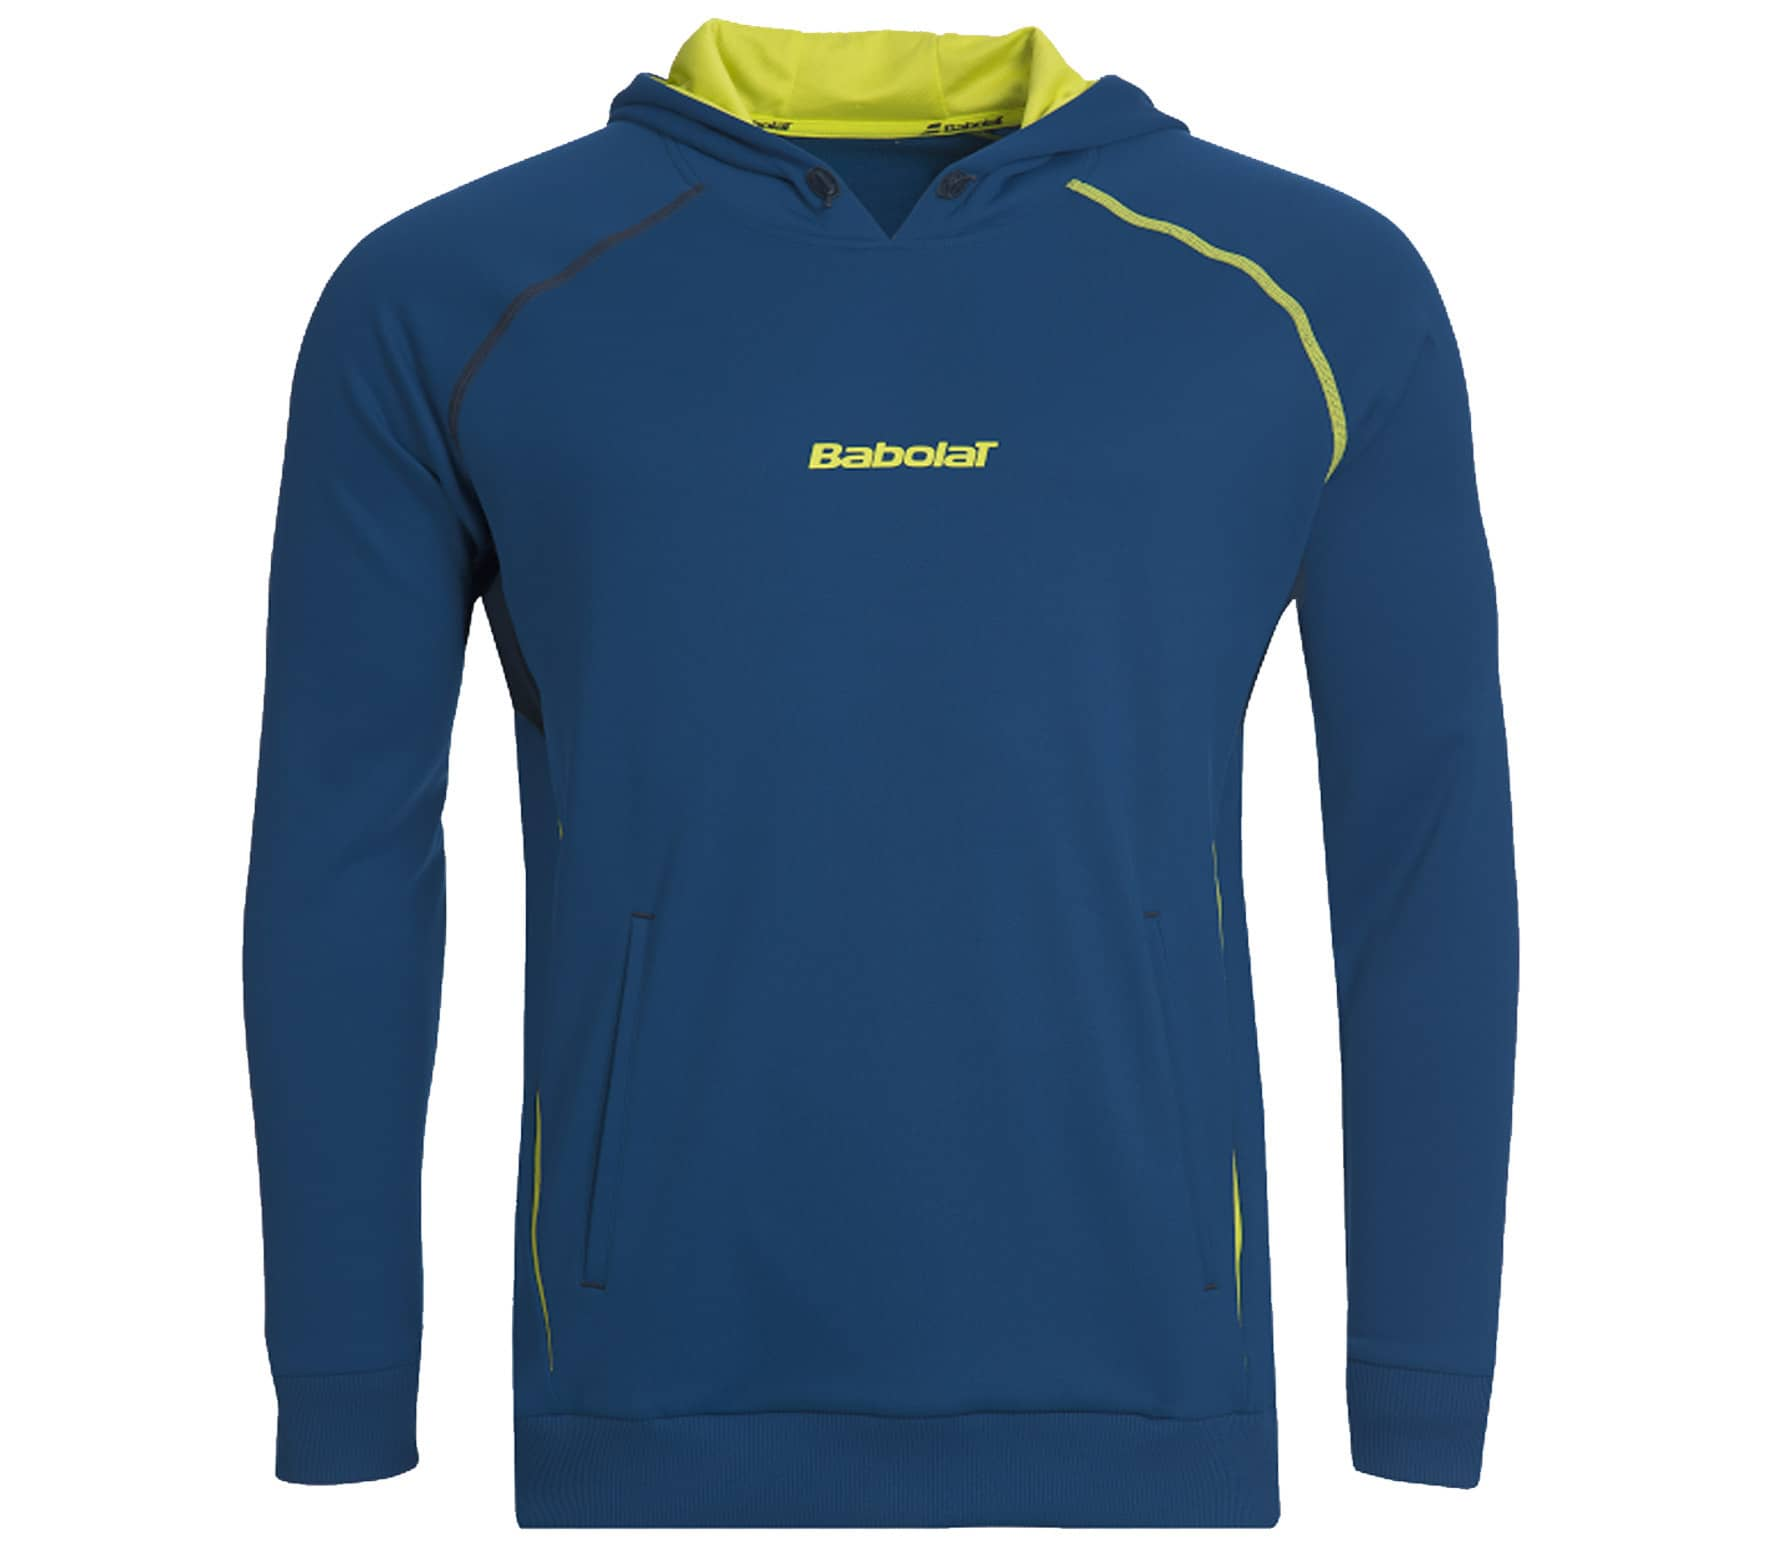 babolat match performance junior pullover blau im online shop von keller sports kaufen. Black Bedroom Furniture Sets. Home Design Ideas